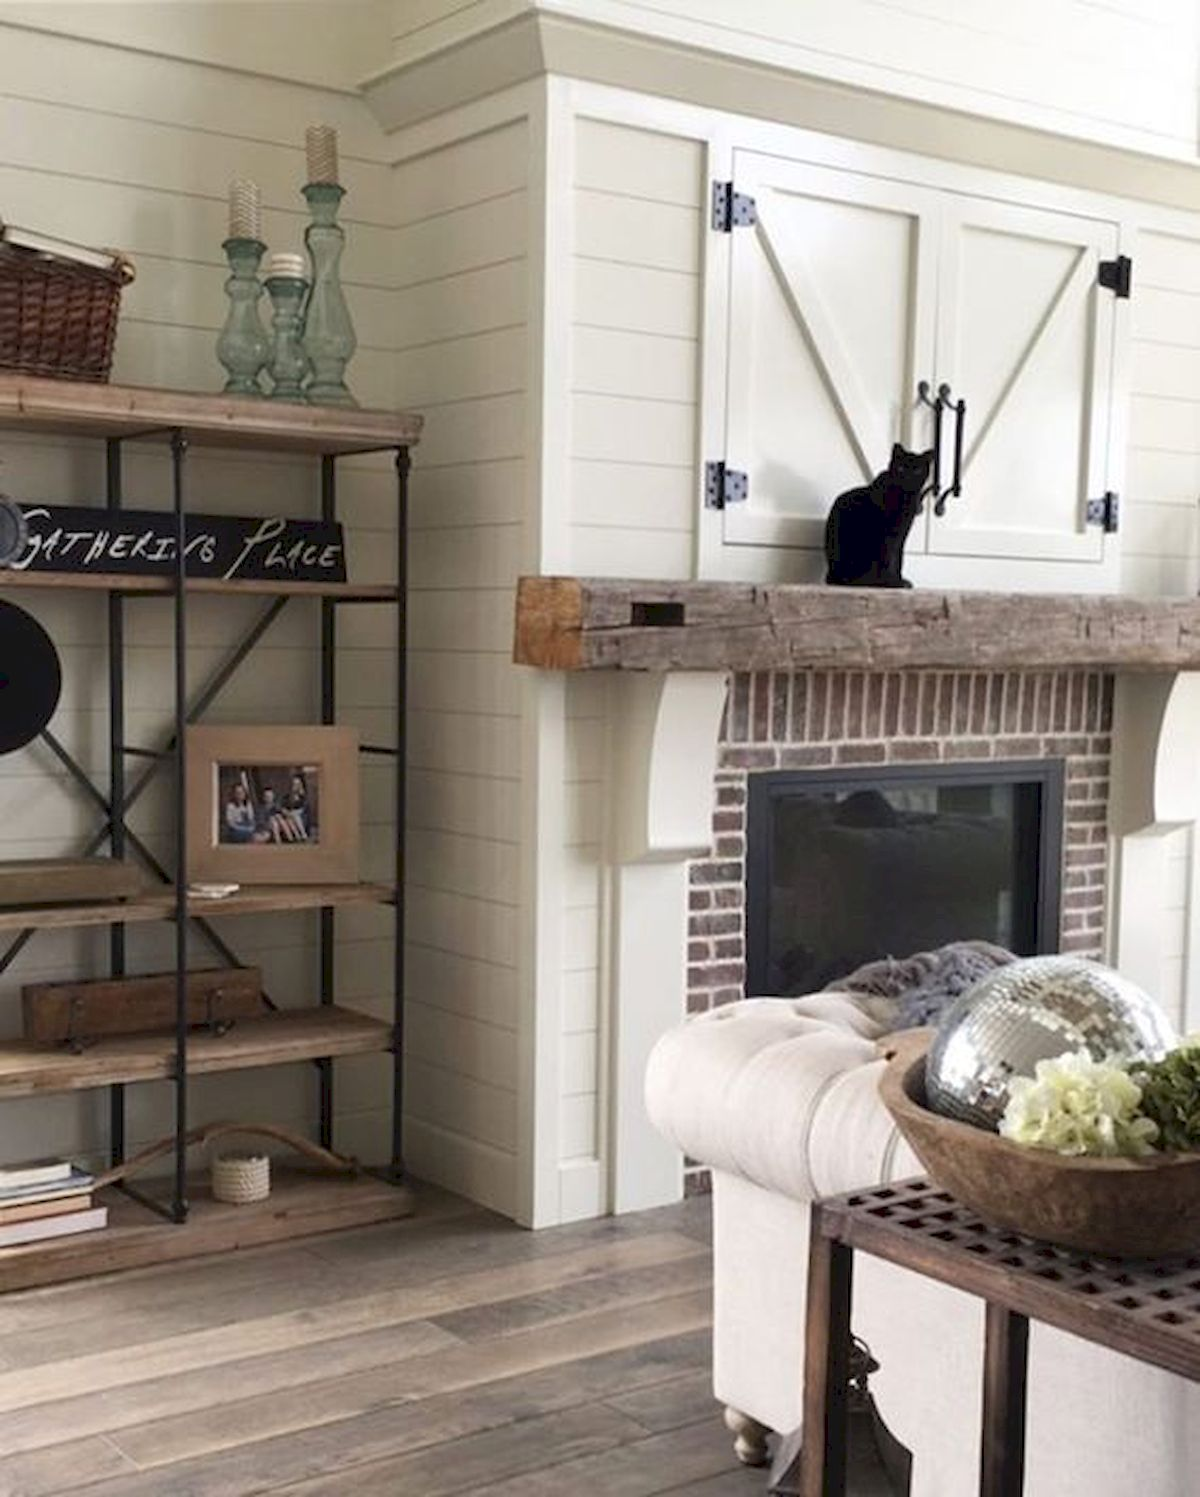 33 Gorgeous Farmhouse Fireplace Decor Ideas And Design 32 33decor